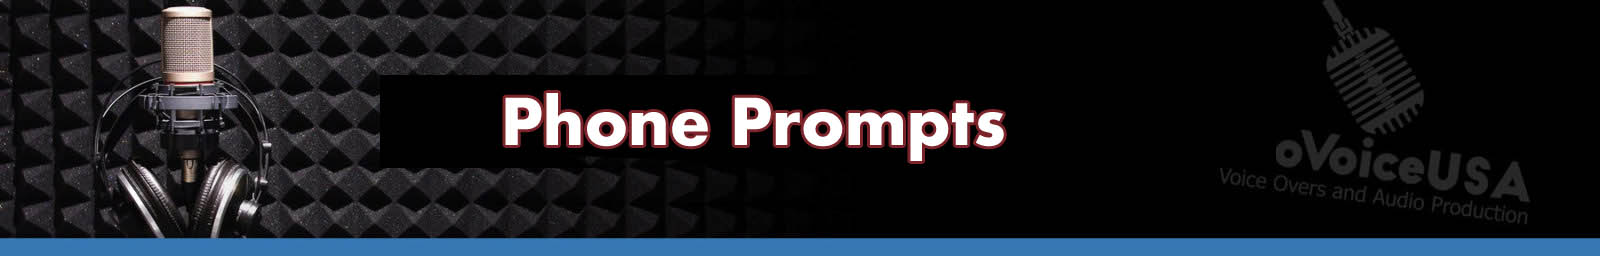 Phone Prompts | Phone Greeting Recording Service | ProVoice USA